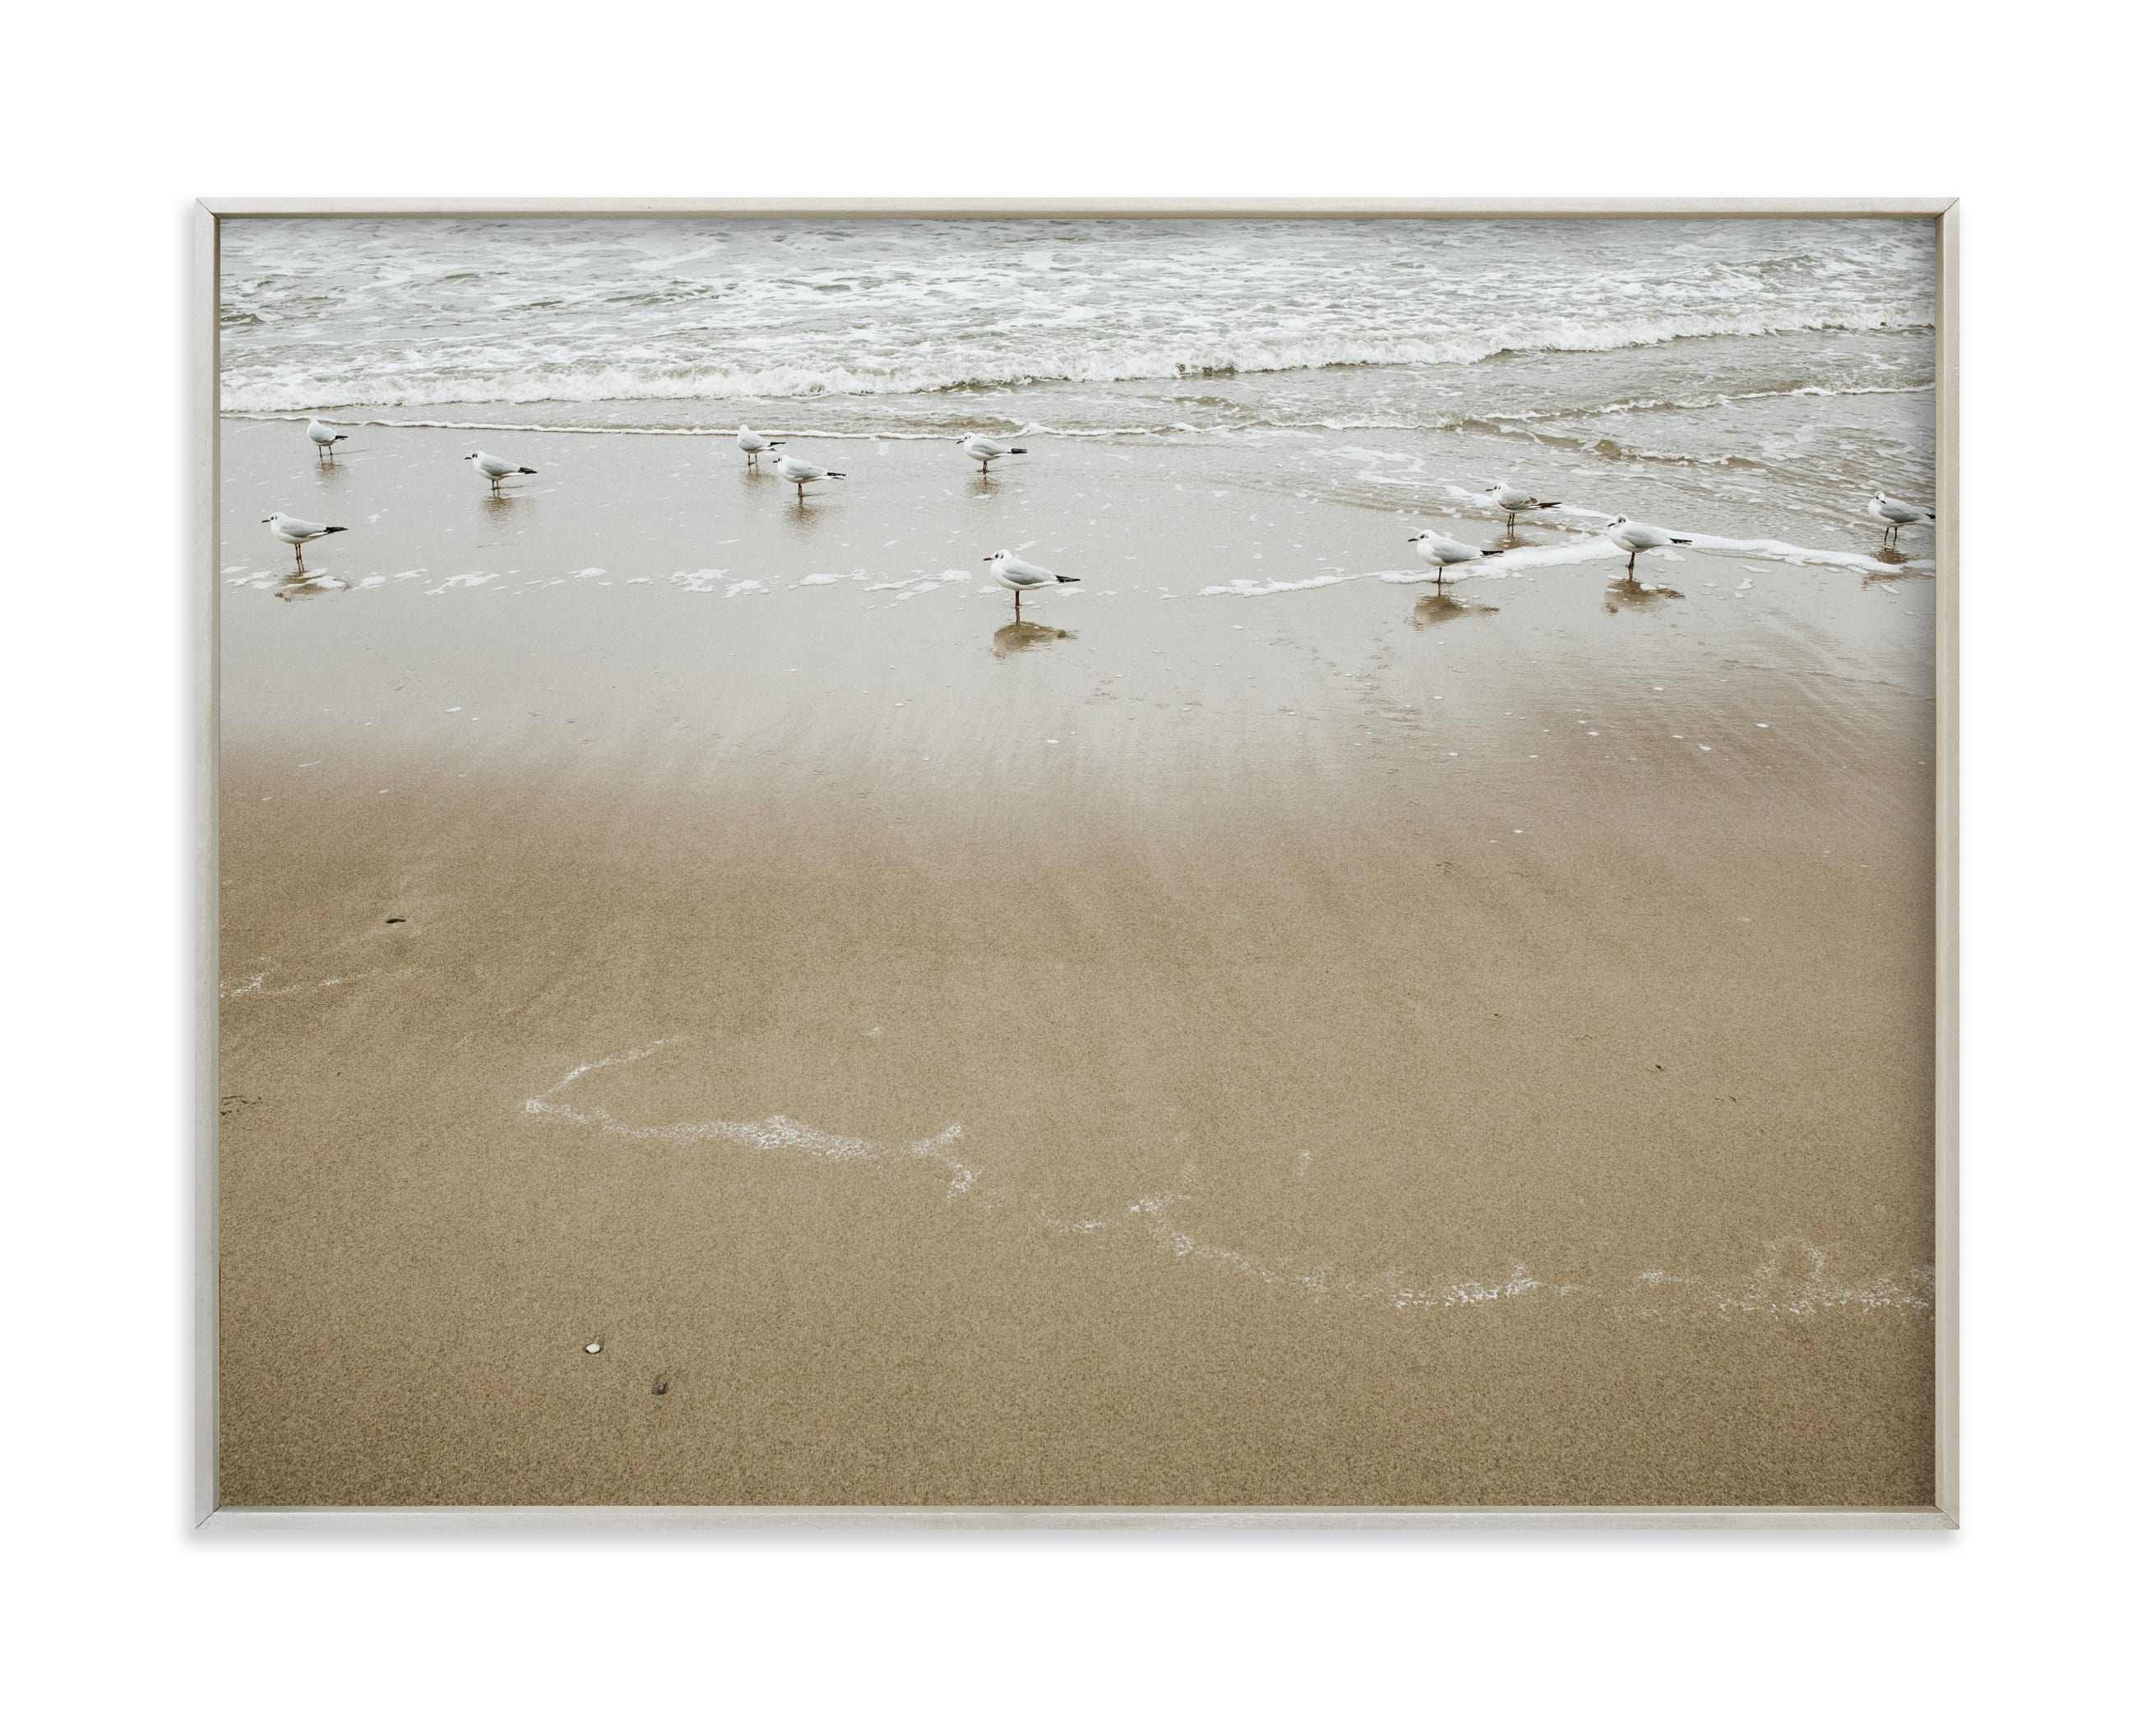 """""""By the sea - Seagulls """" by Lying on the grass in beautiful frame options and a variety of sizes."""